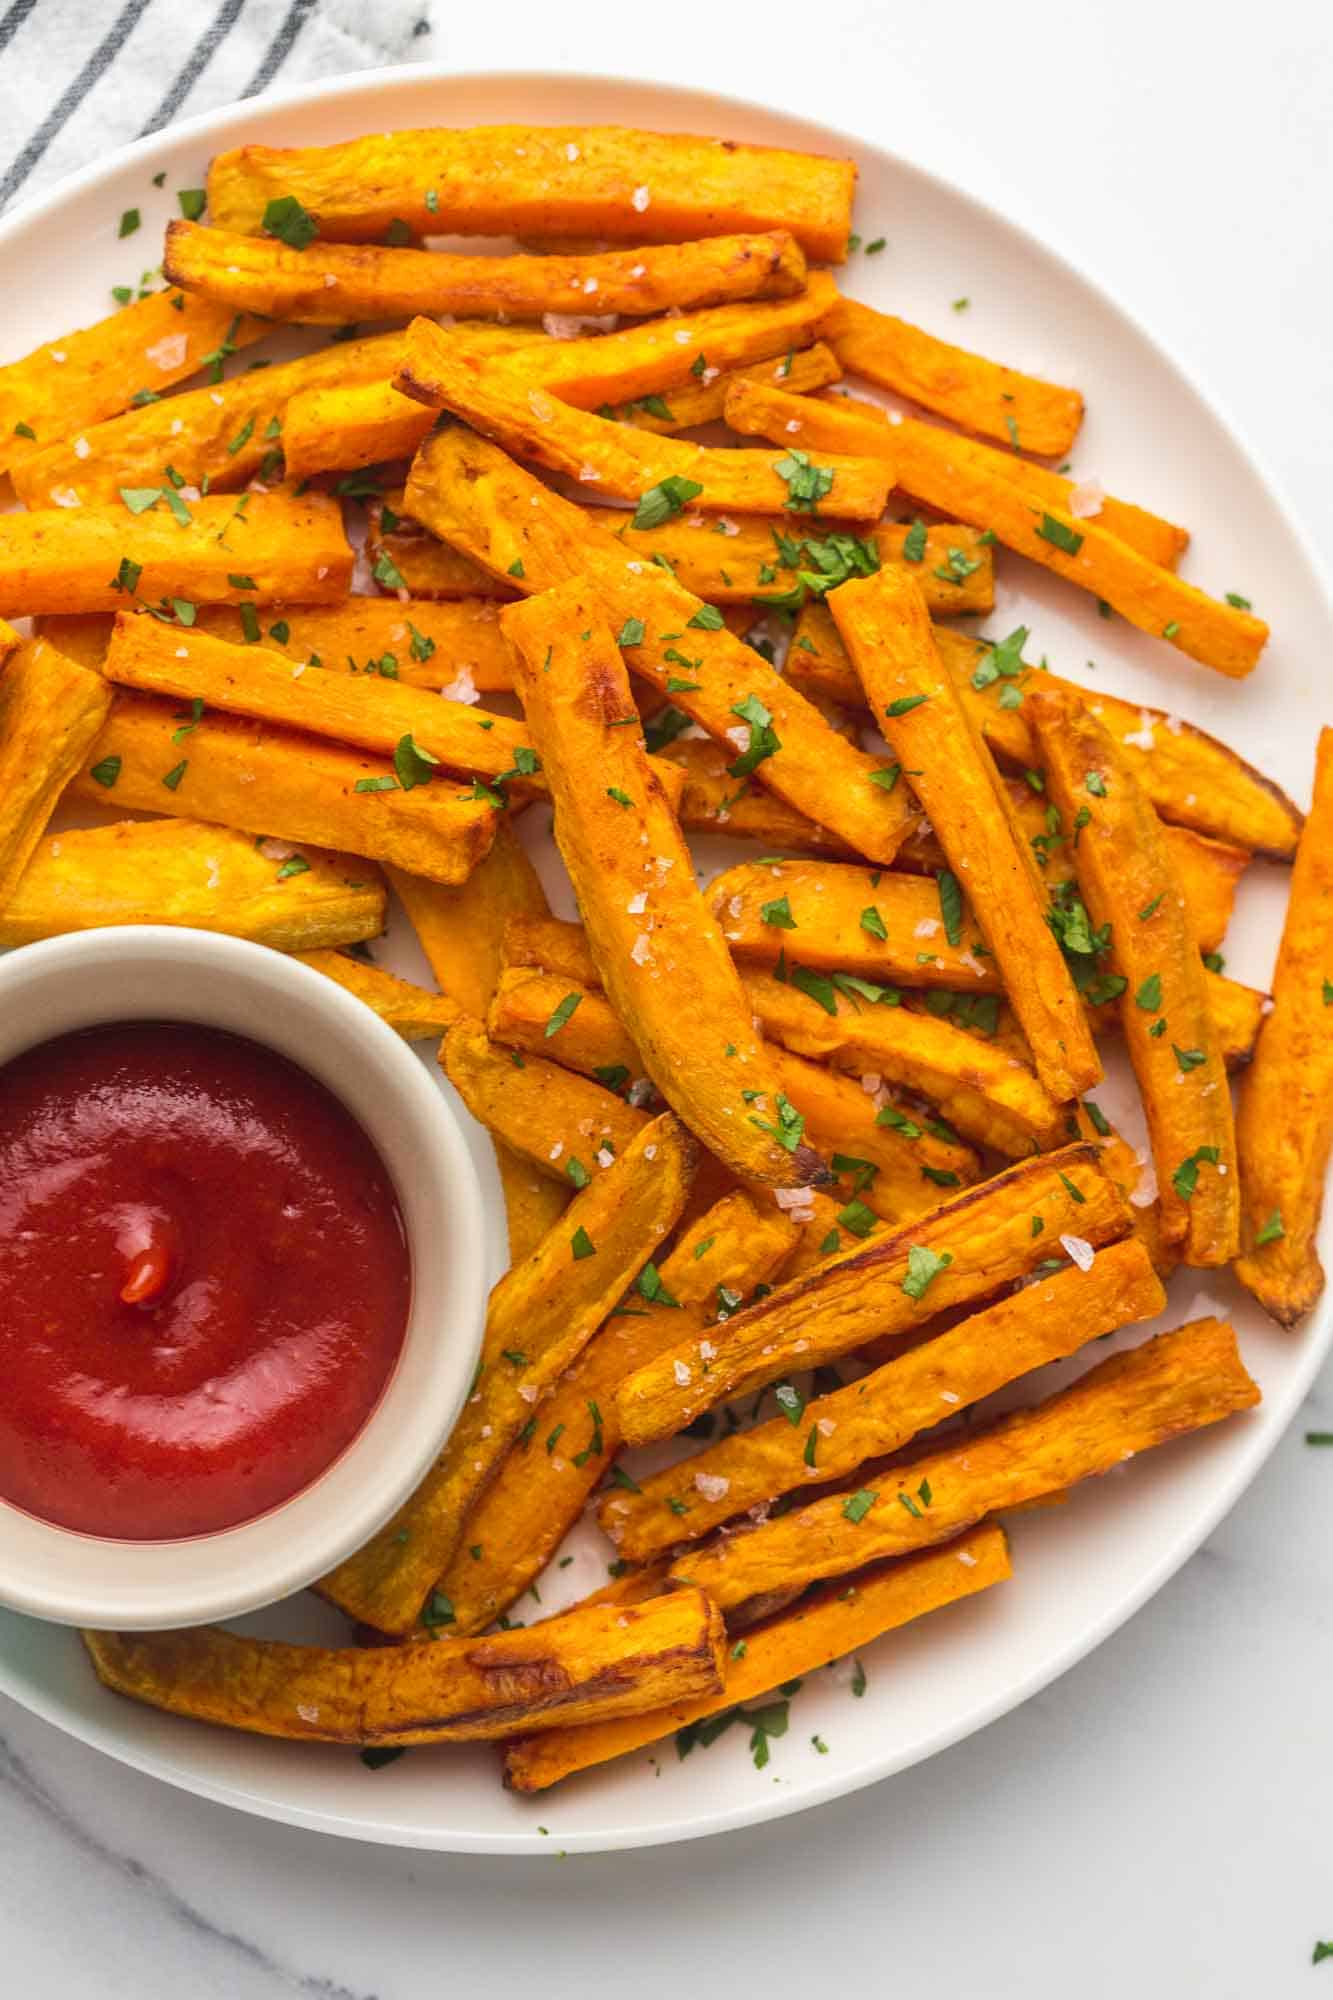 Sweet potato fries on a white plate with tomato sauce on the side